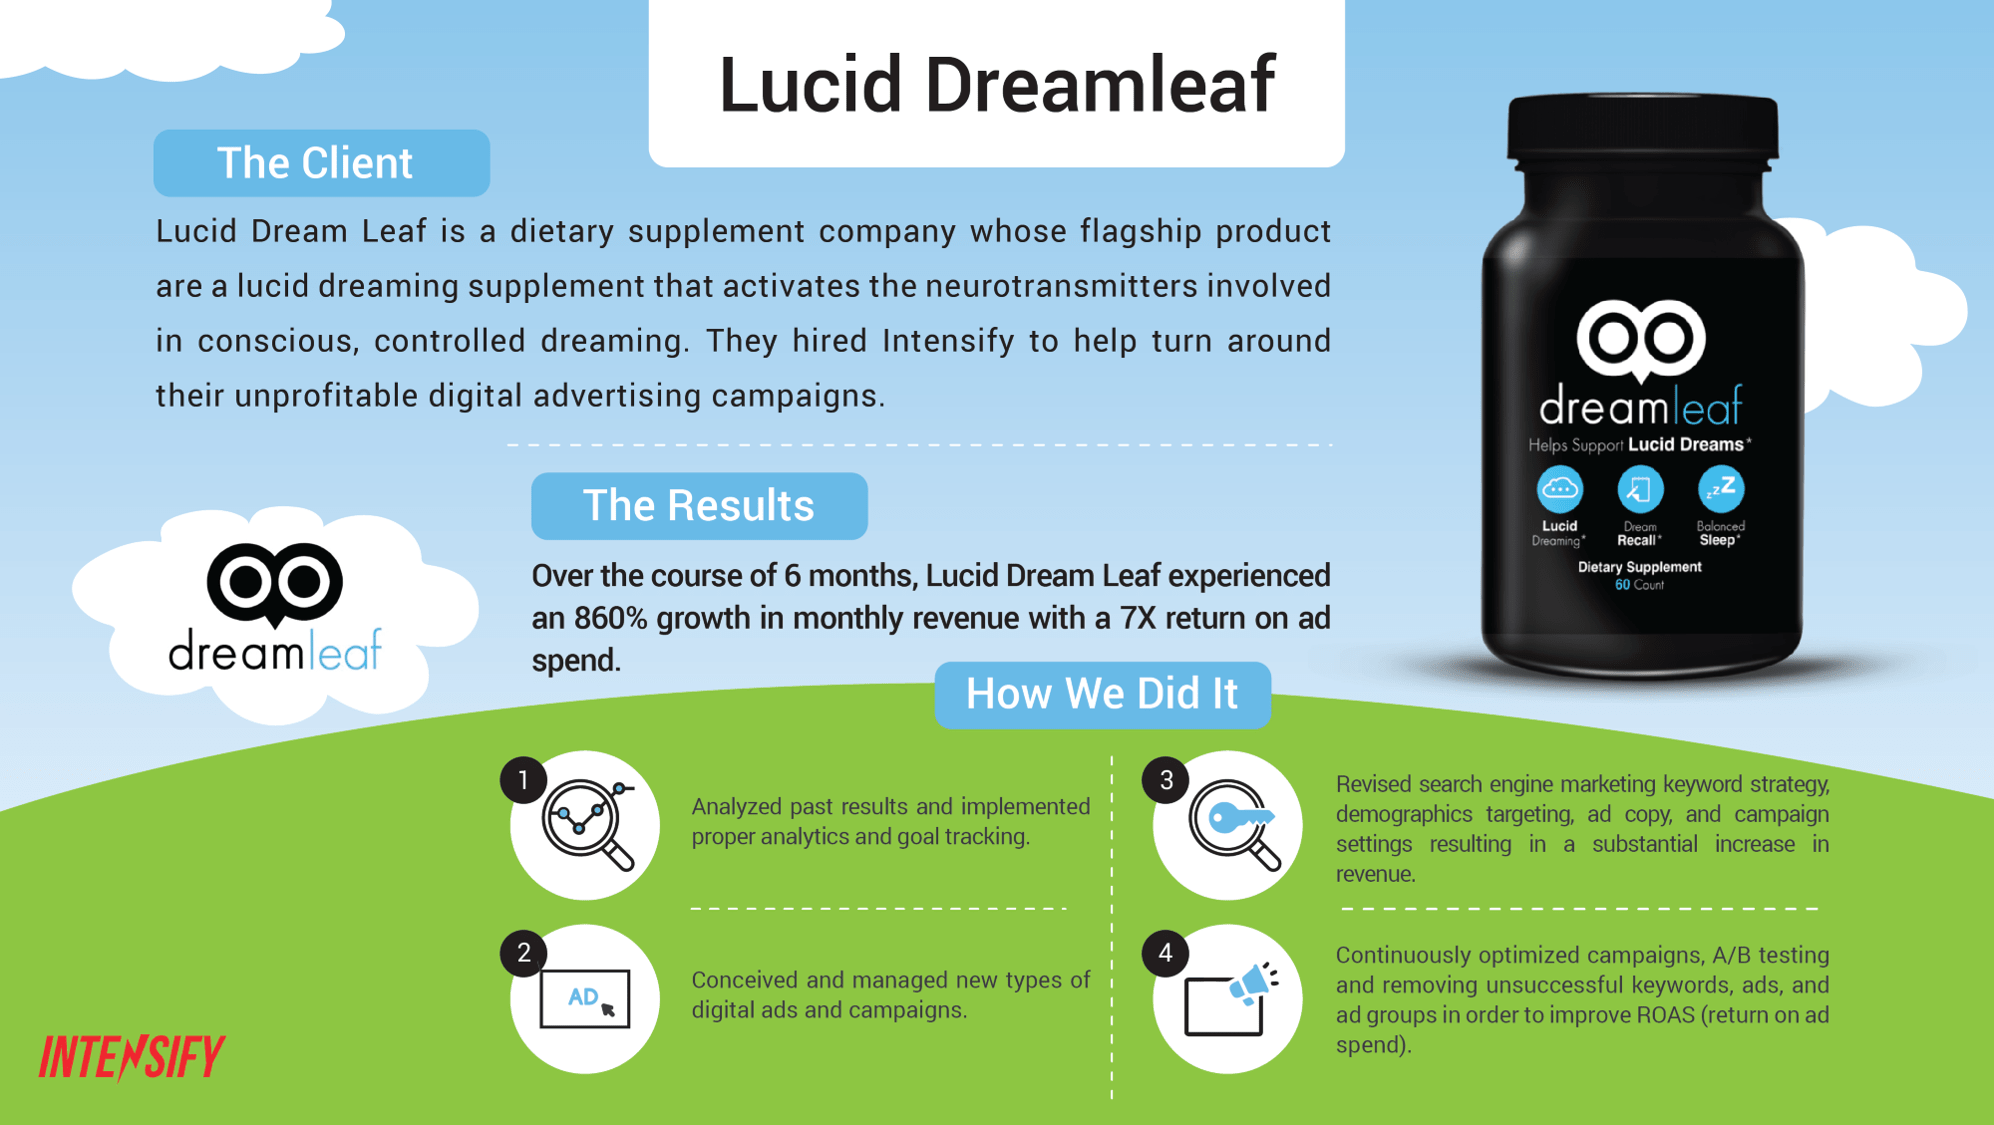 Lucid Dream Leaf - Ecommerce Case Study